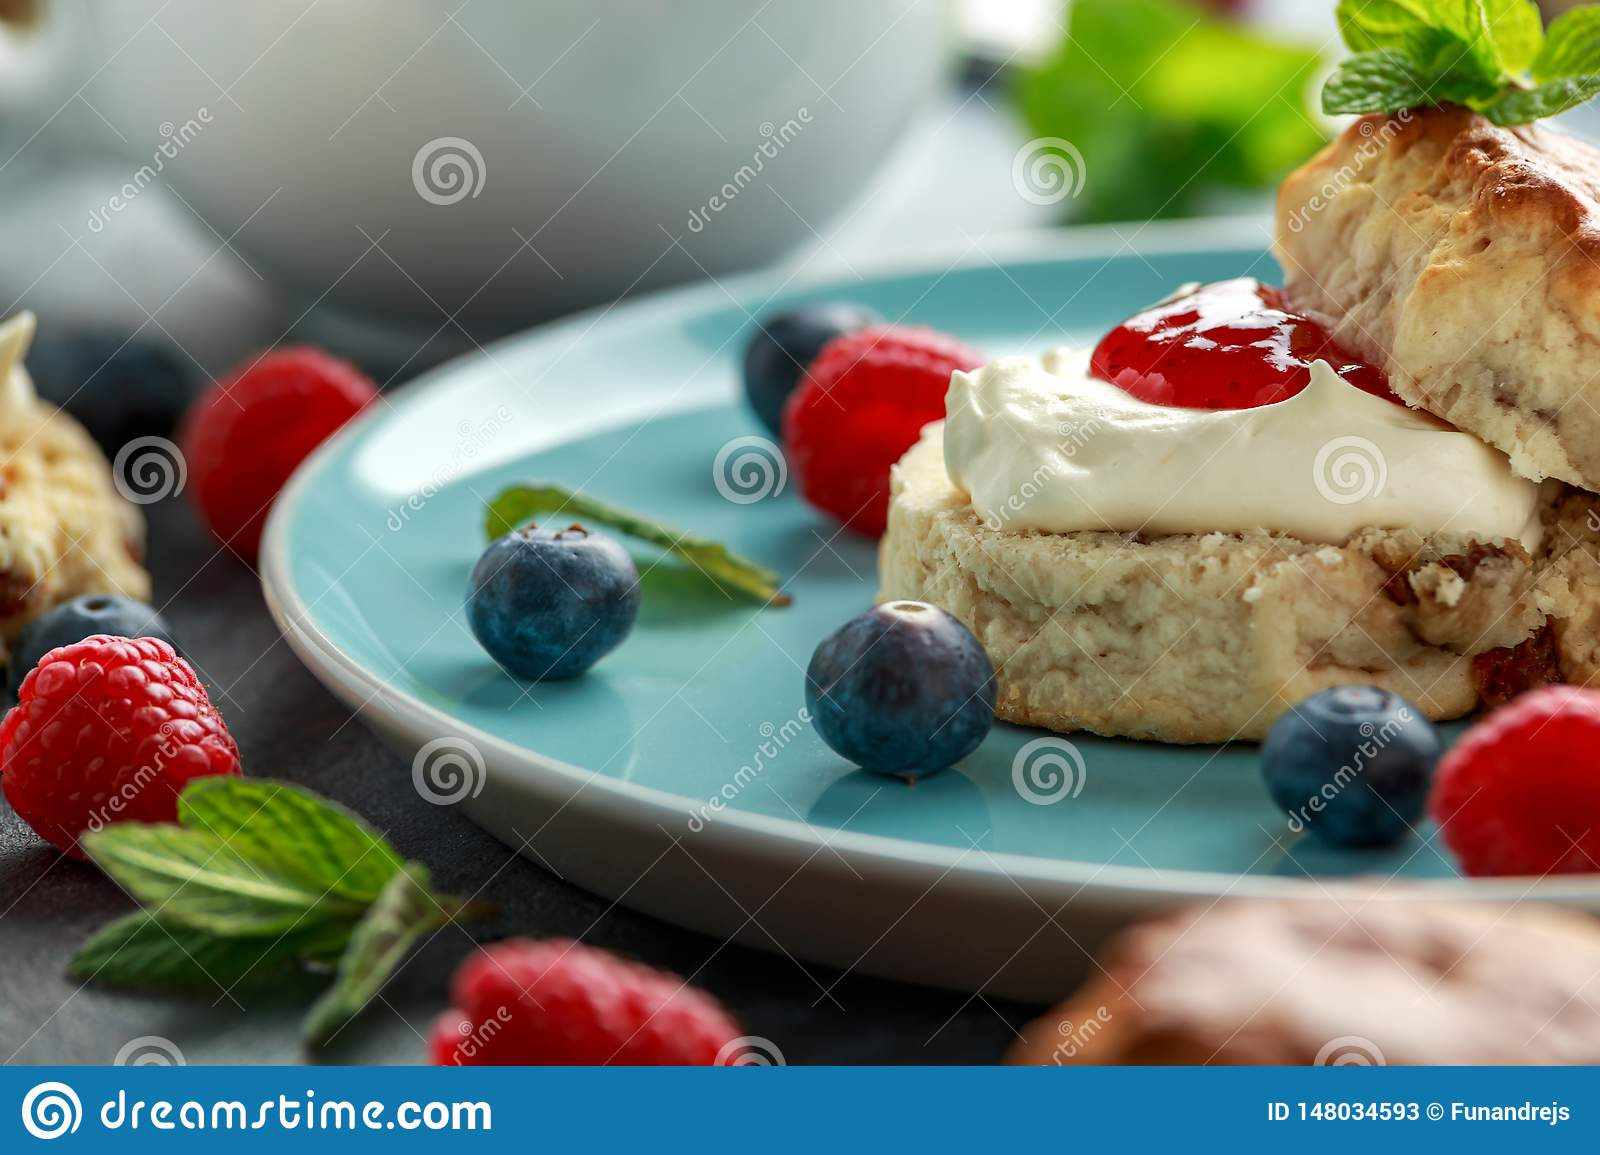 Classic scones with clotted cream, strawberries jam, english Tea and other fruit